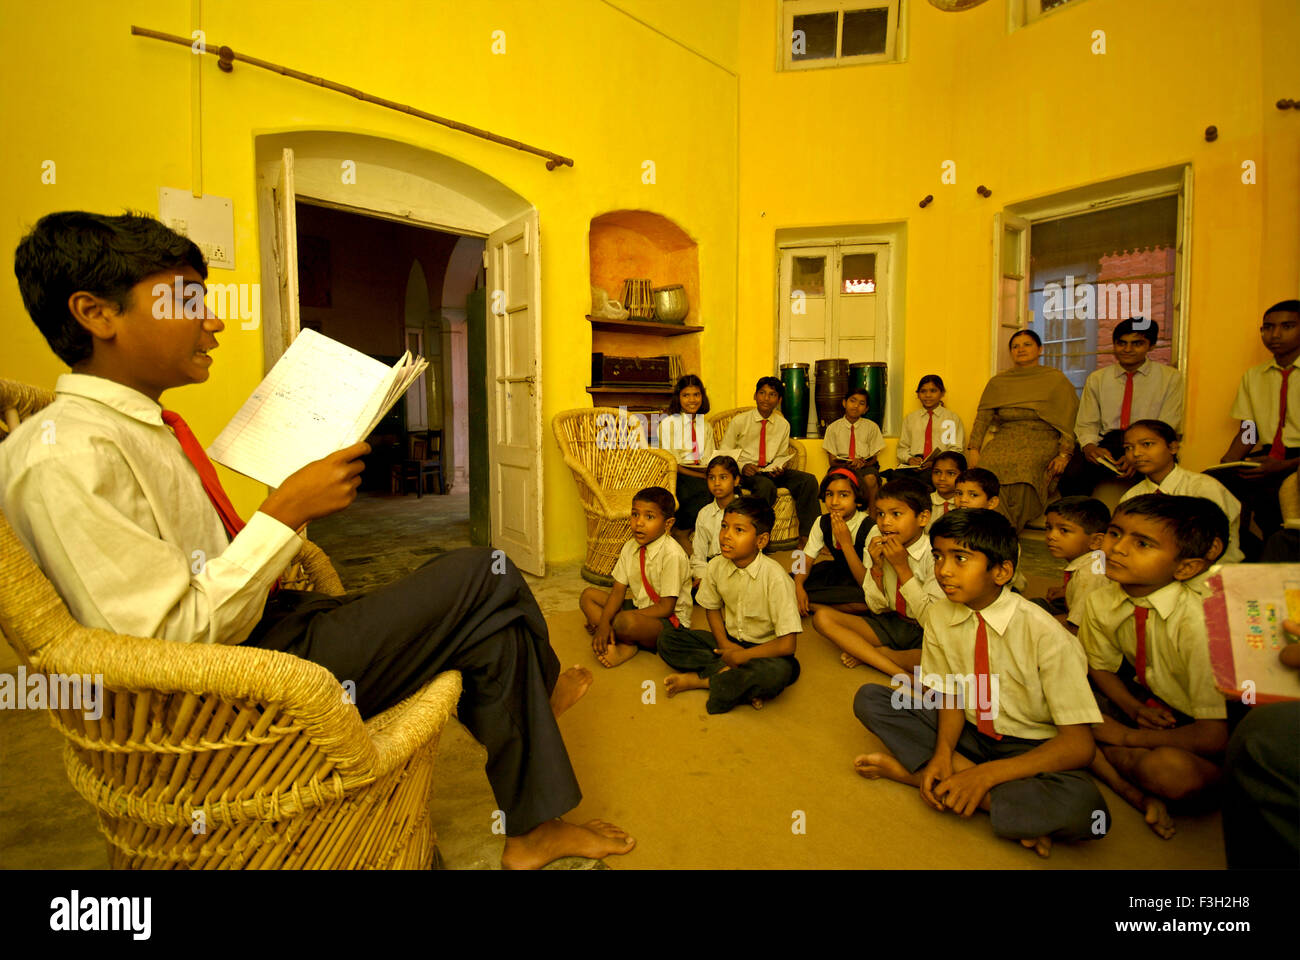 boy essay boy reading essay to class mates in the music room of  boy reading essay to class mates in the music room of nanhi dunya boy reading essay kaffir boy essay